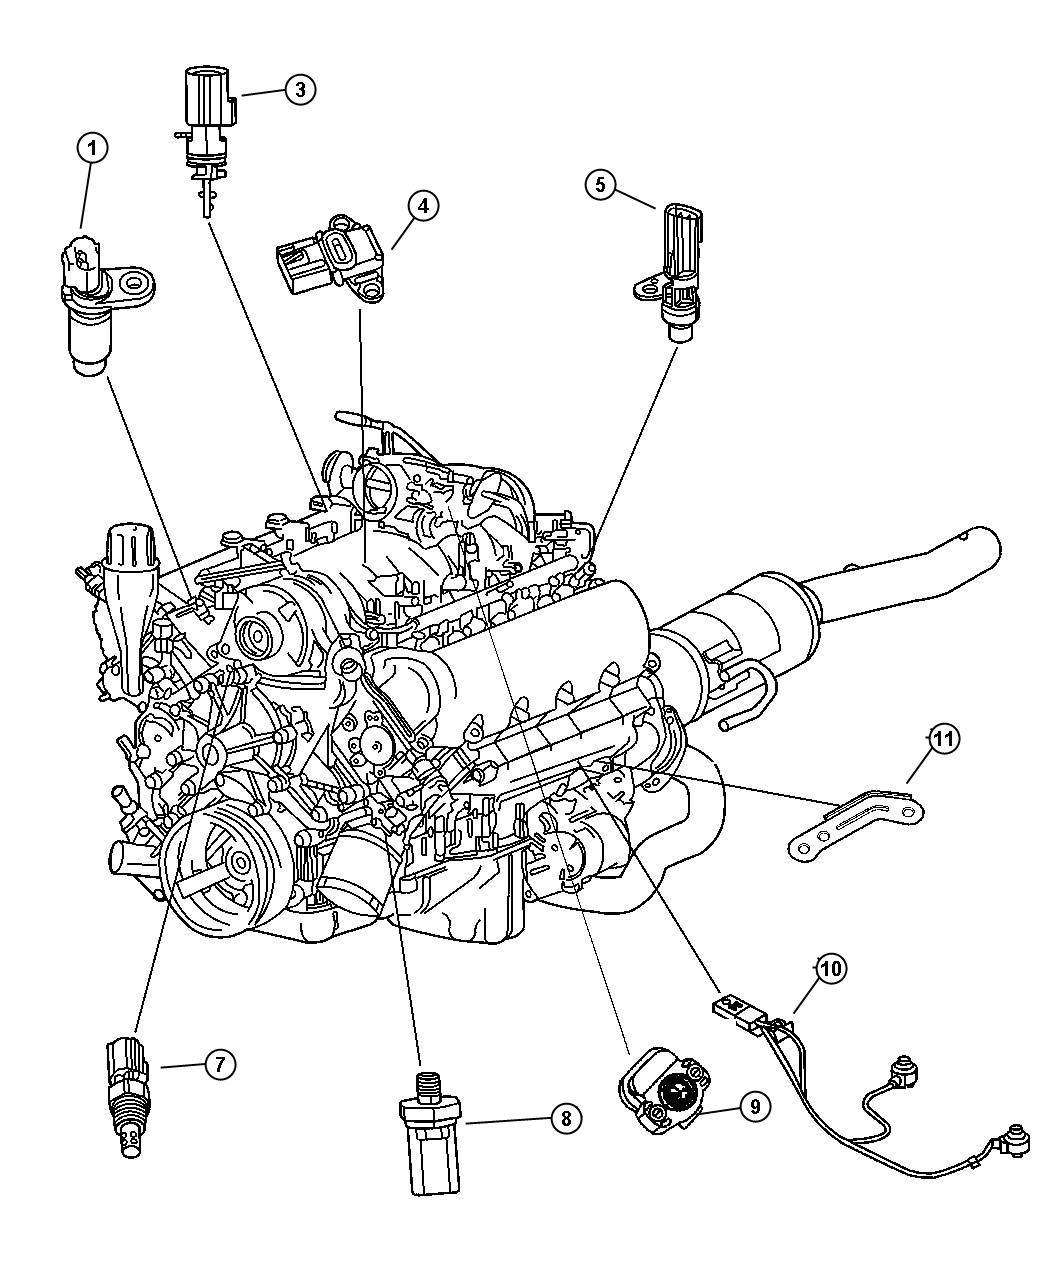 2006 dodge dakota sensors  engine 3 7l  ek0